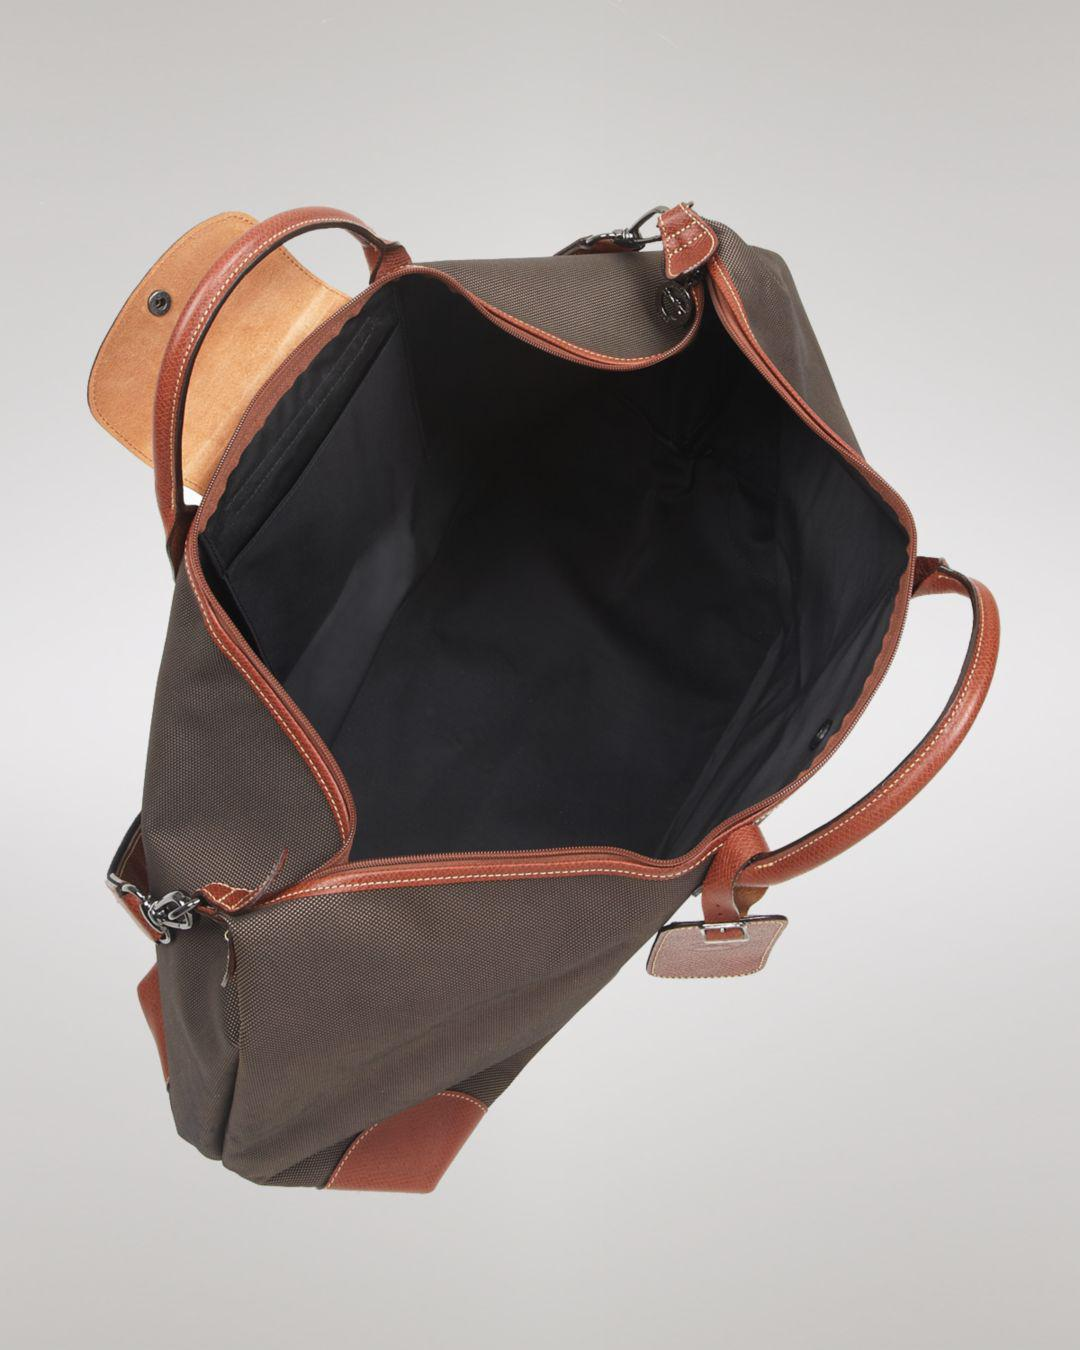 Lyst - Longchamp Boxford Extra Large Duffel Bag in Brown for Men 02e758f50cf0f